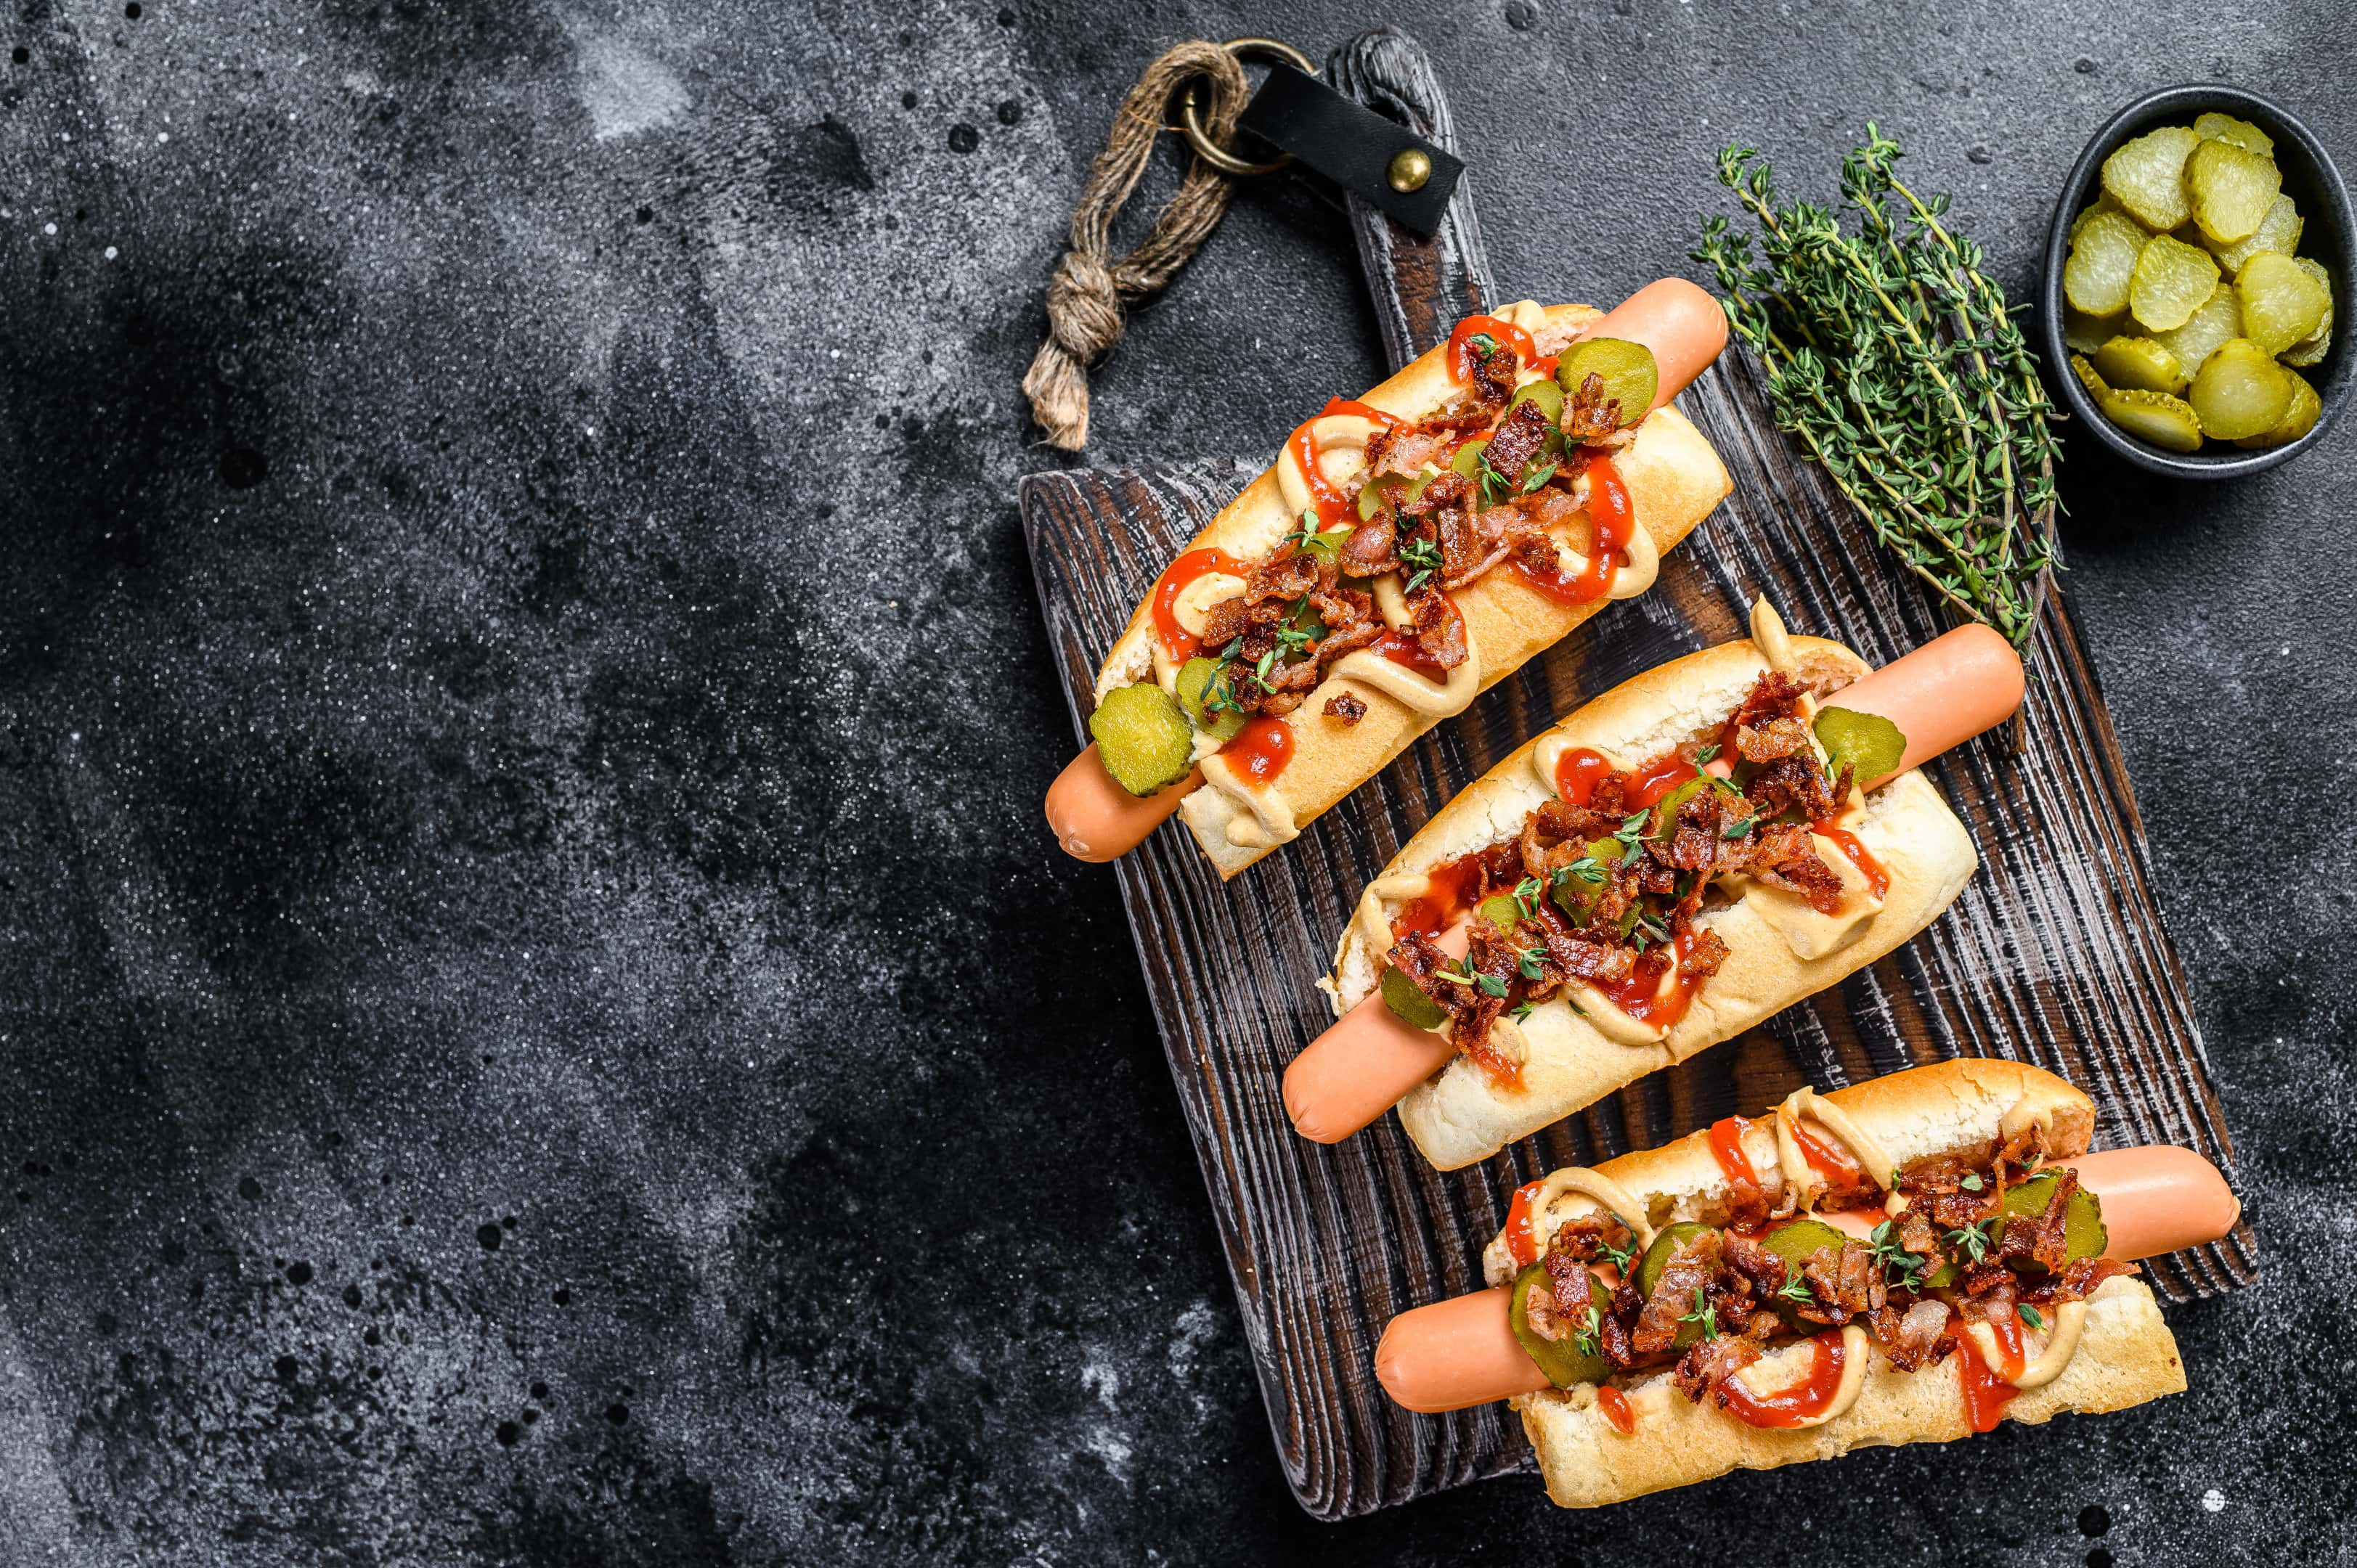 Processed hot dogs with different toppings on dark wooden background